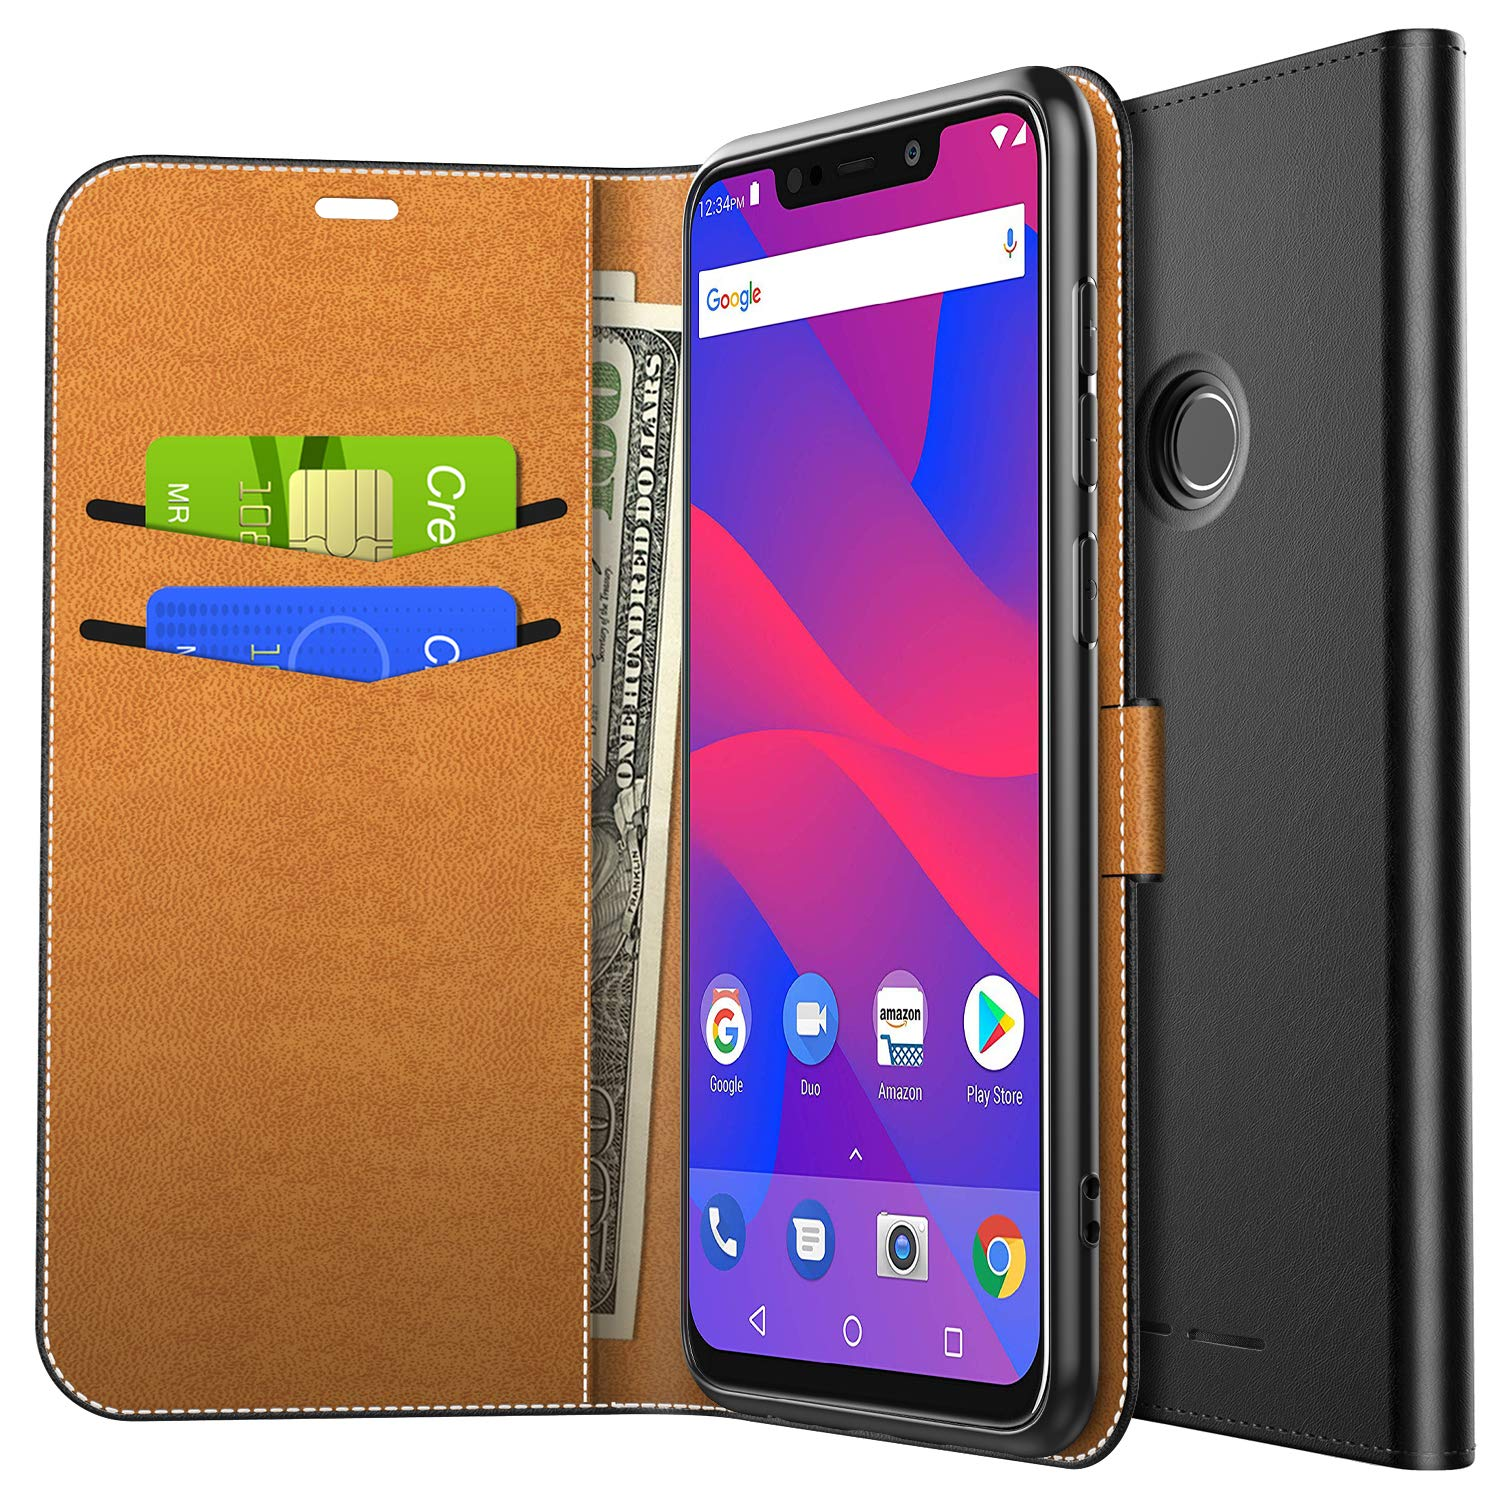 best loved 902a7 1efa4 Yocktec Case for BLU VIVO XL4, Ultra Slim Premium PU Leather Flip Wallet  Case with Card Pockets and Kickstand Feature for BLU VIVO XL4 Smartphone ...